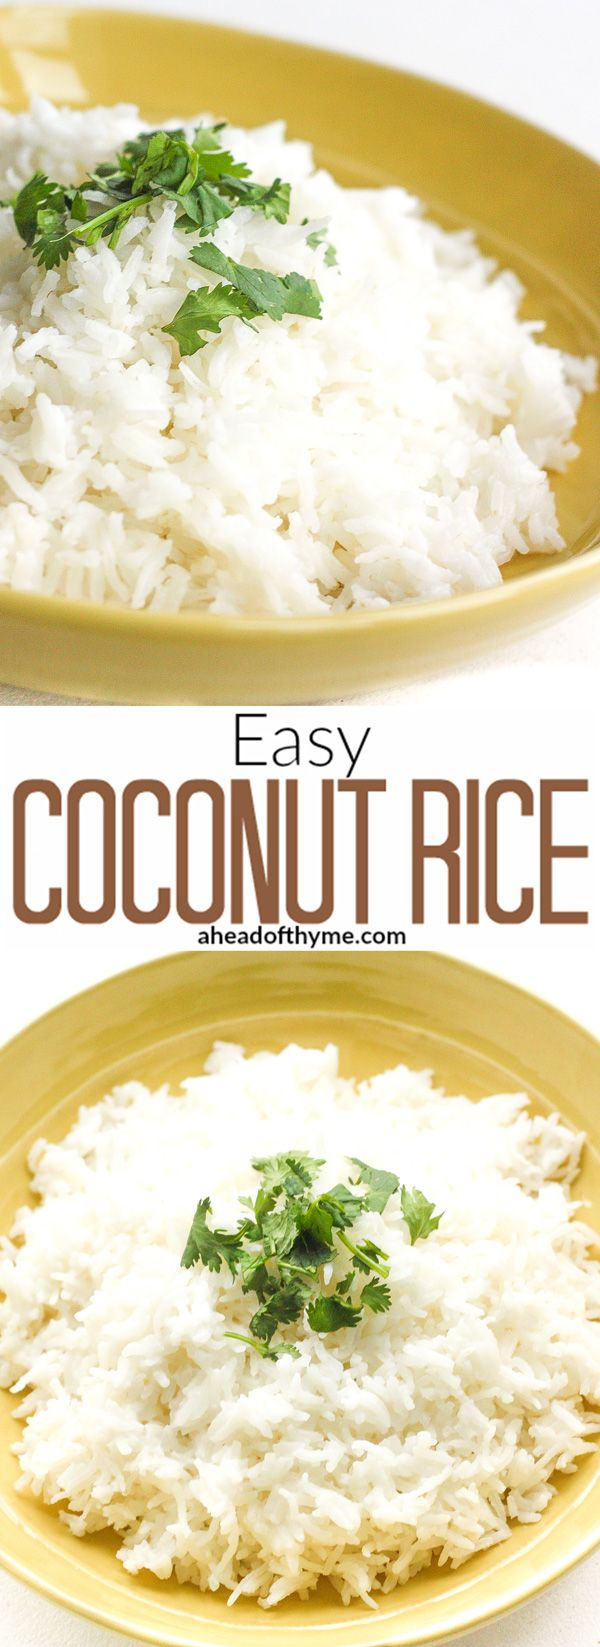 Easy Coconut Rice: Amazing, aromatic coconut flavours emanates from this perfect, easy coconut rice, making it the perfect side dish to almost all Thai and South Asian dishes. | aheadofthyme.com via @aheadofthyme